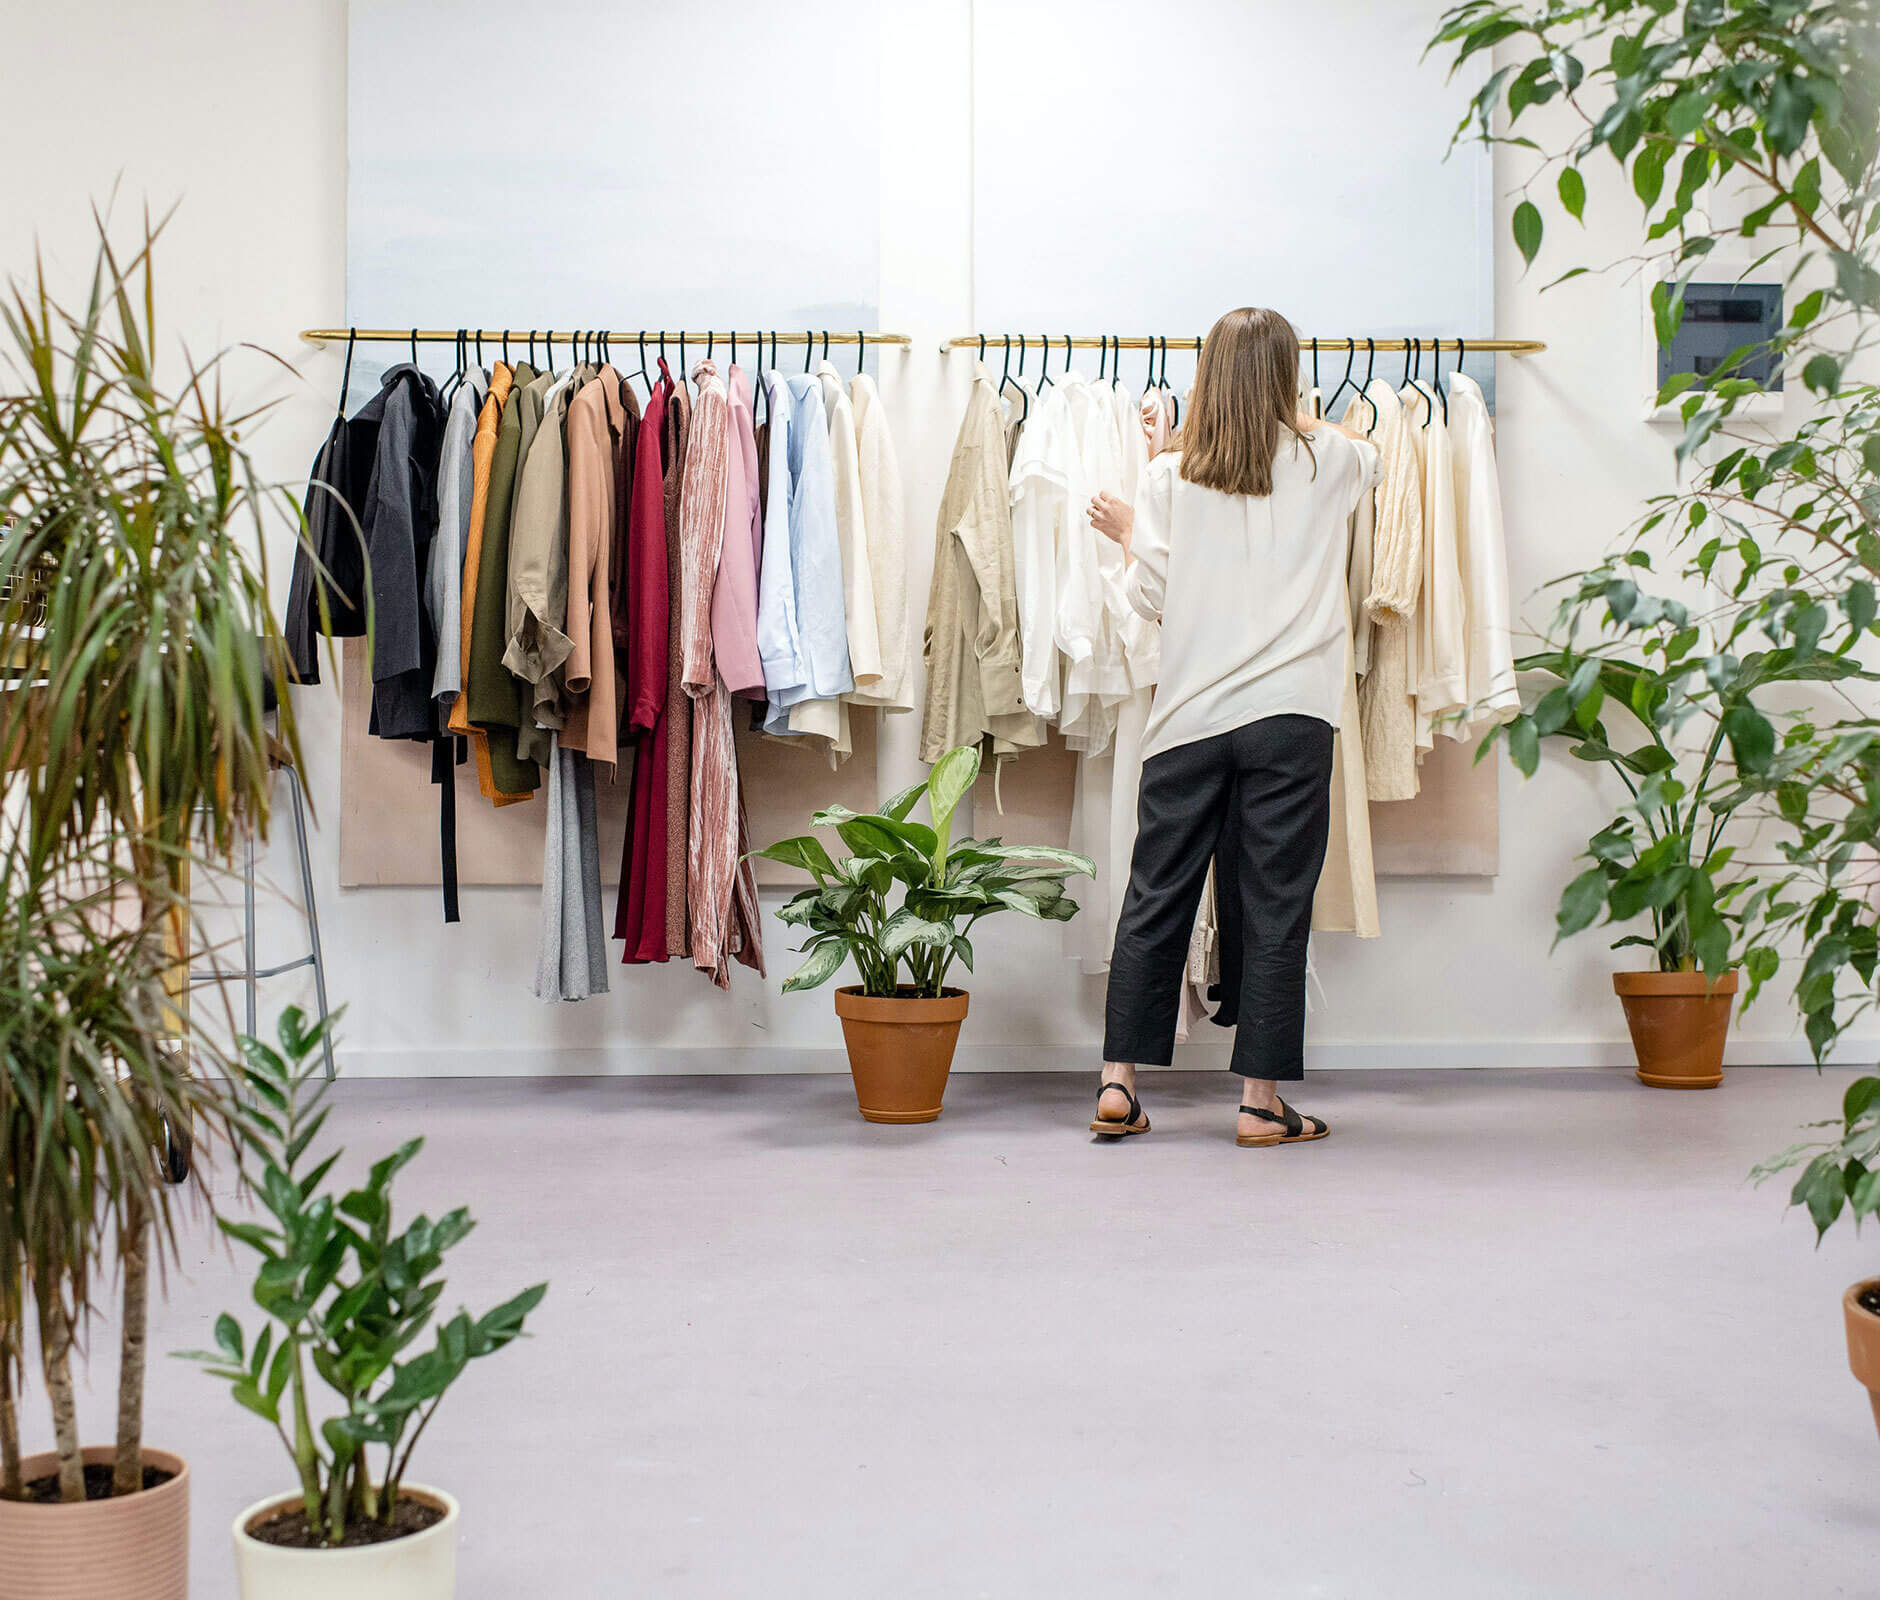 With the lockdown, brands were forced into the digital space. Customers' priorities have changed, and fashion retailers were encouraged to rethink.